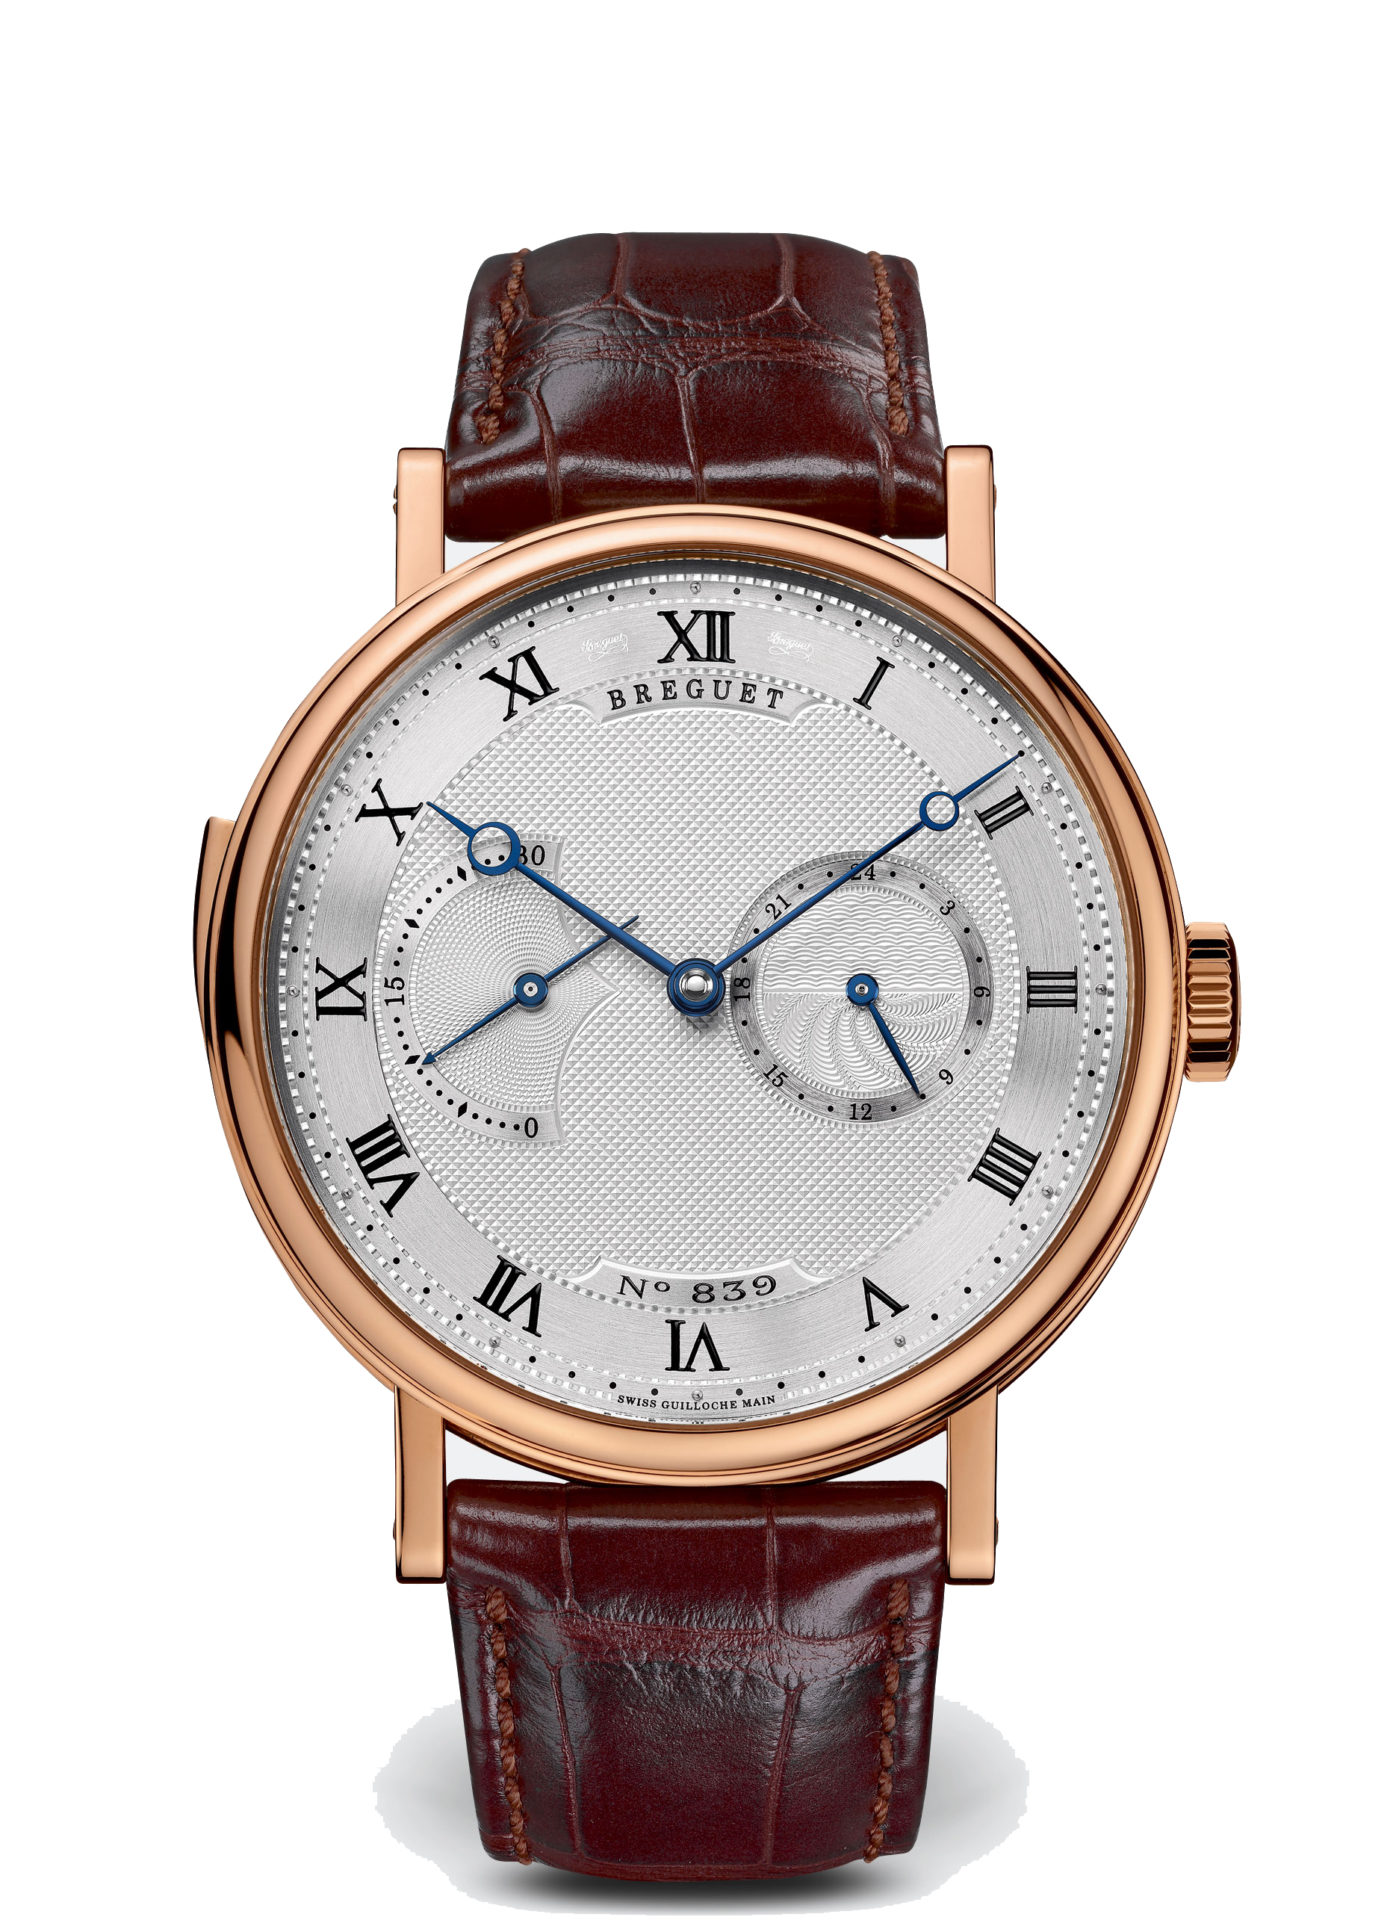 Breguet-Classique-Complications-Répétition-Minutes-7637-Hall-of-Time-7637br-12-9zu